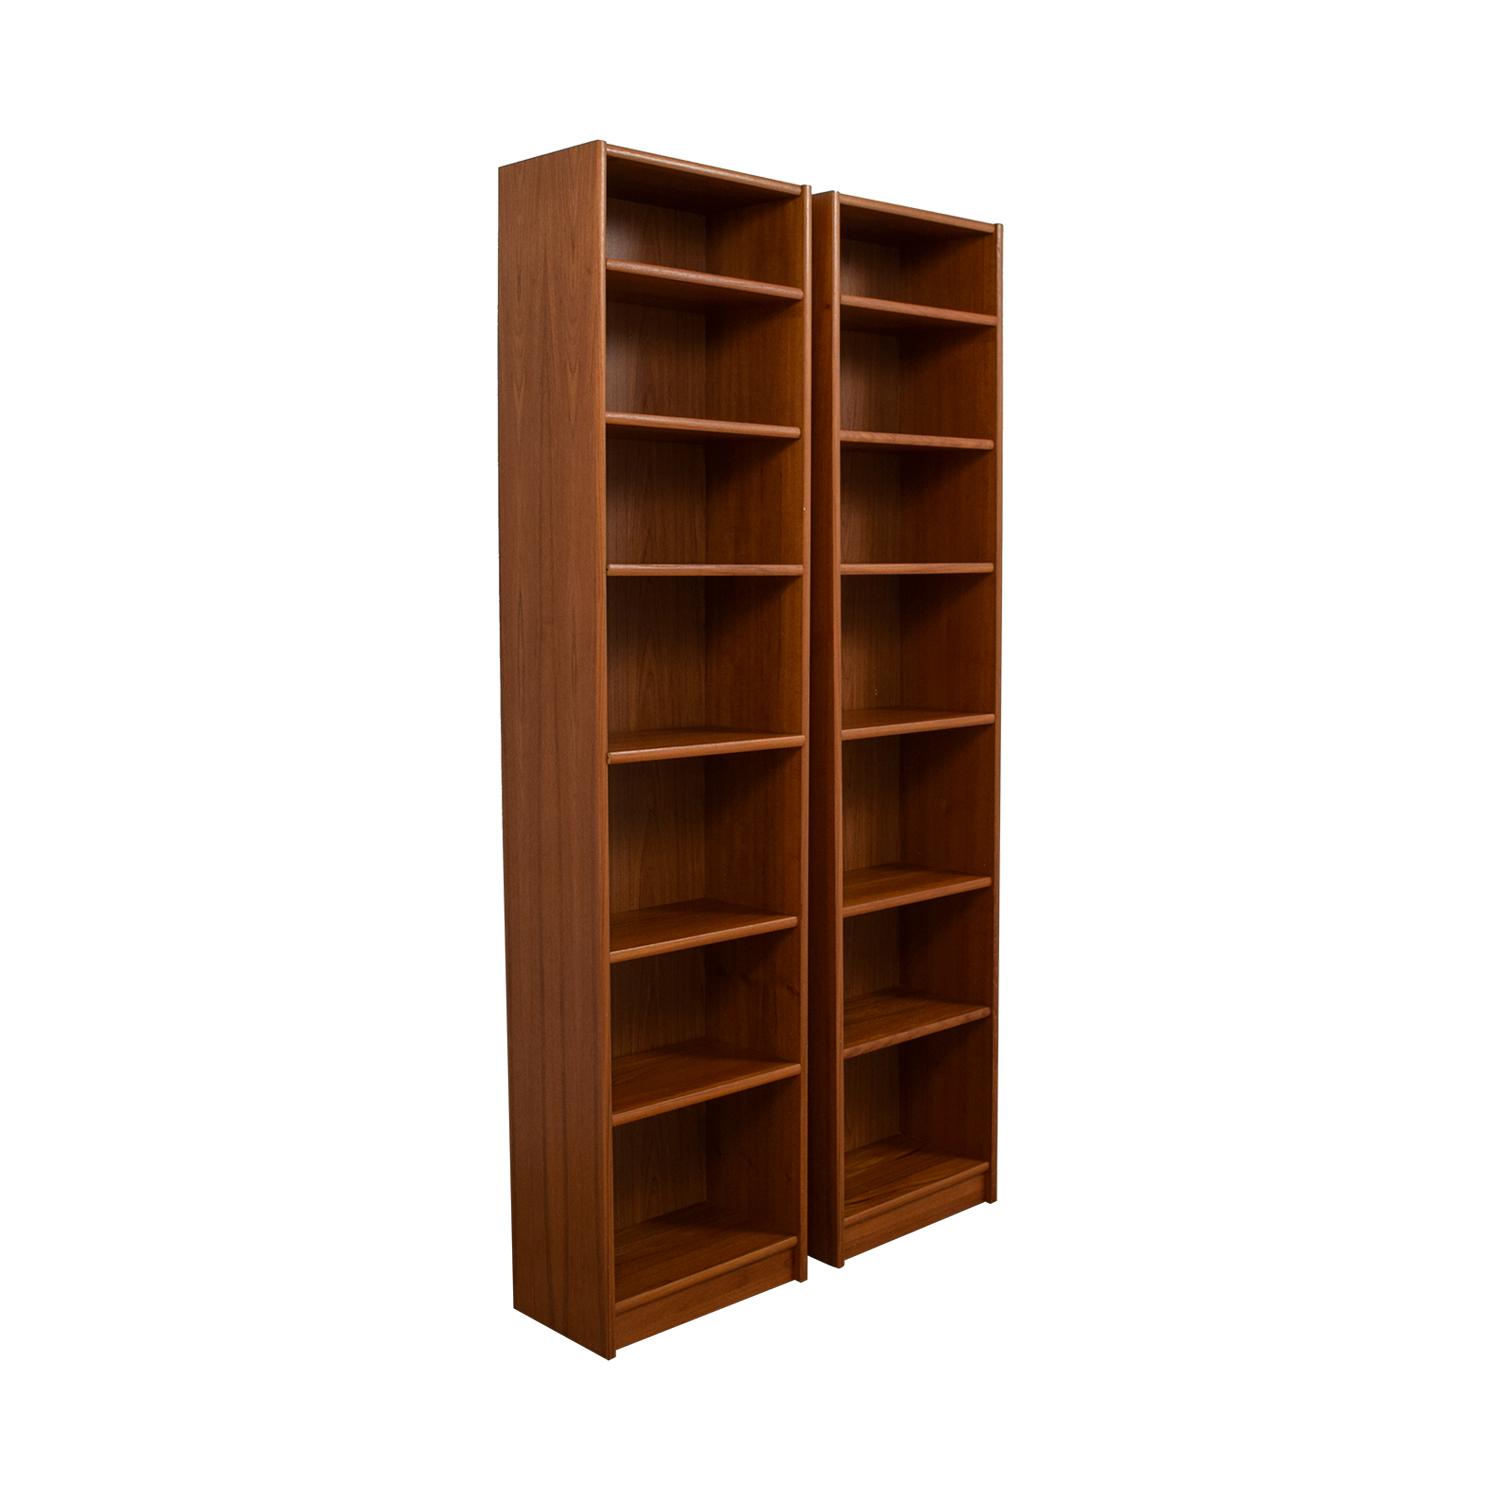 The Door Store The Door Store Wood Bookcases dimensions